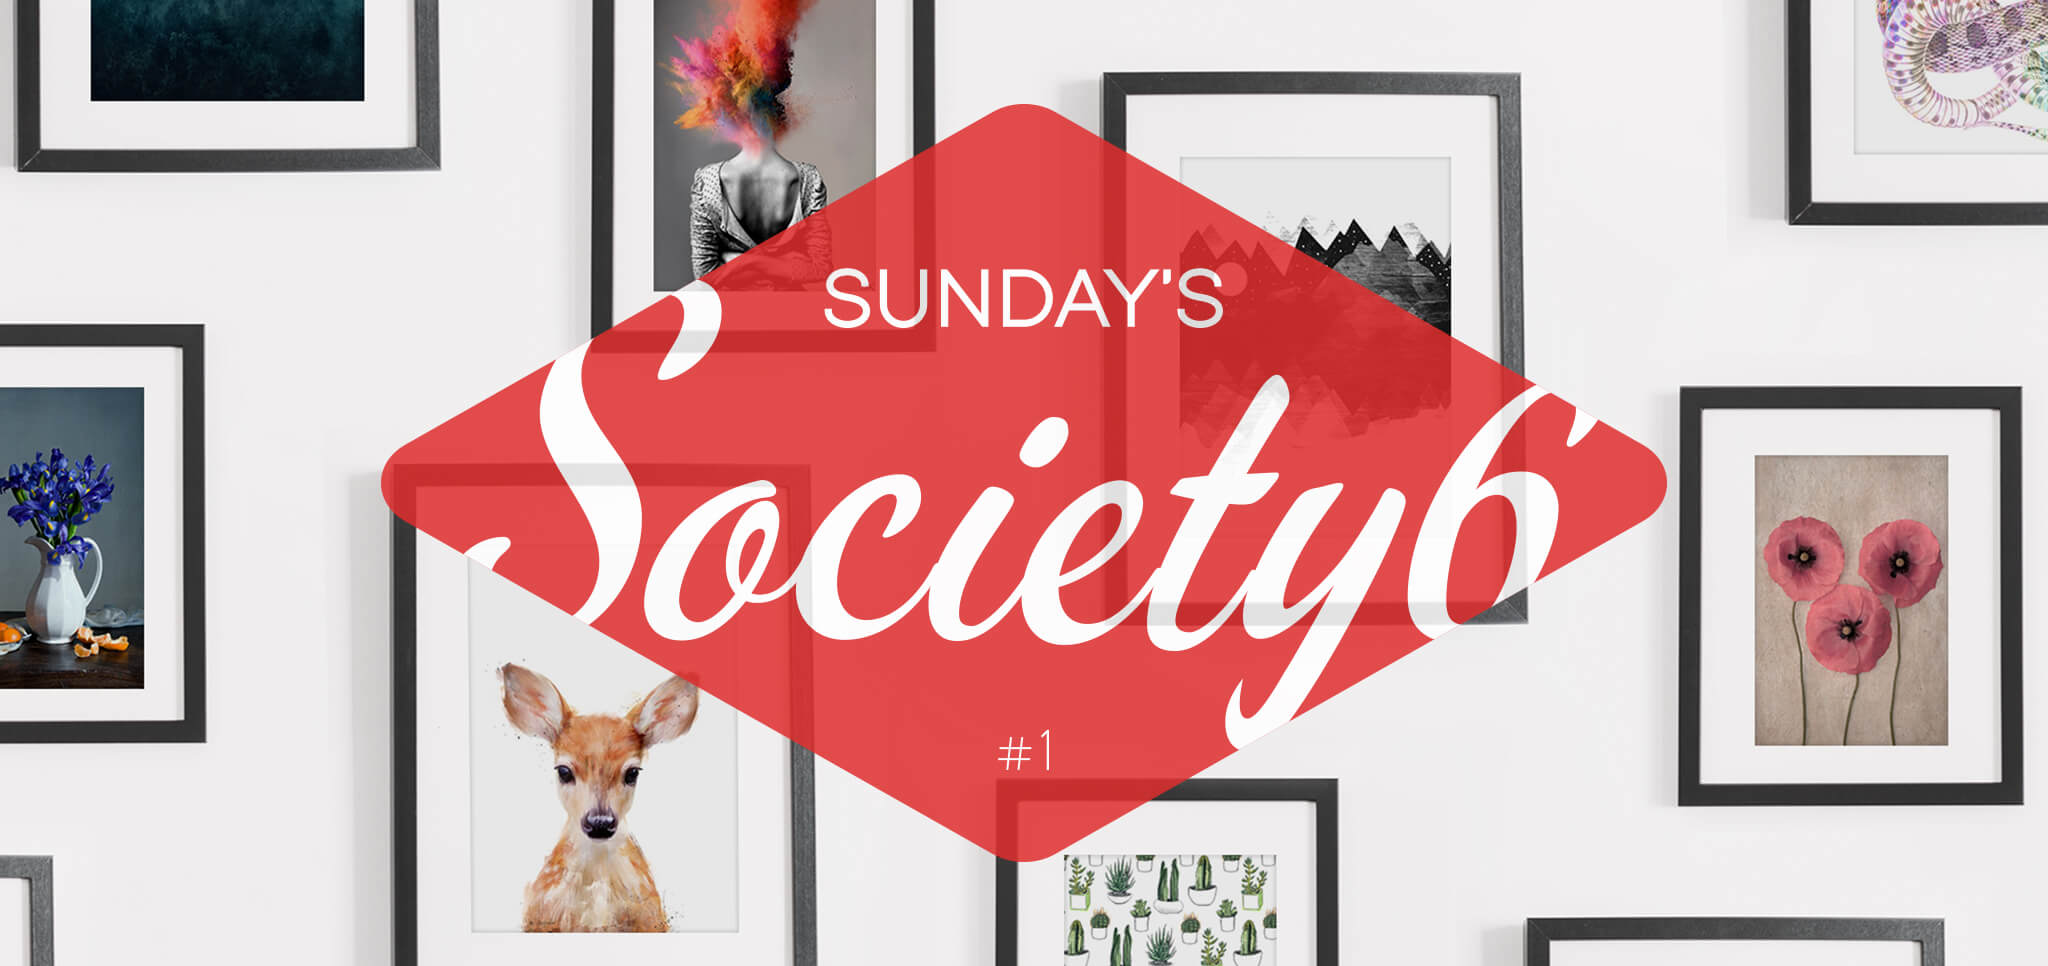 Sunday's Society6 #1 header